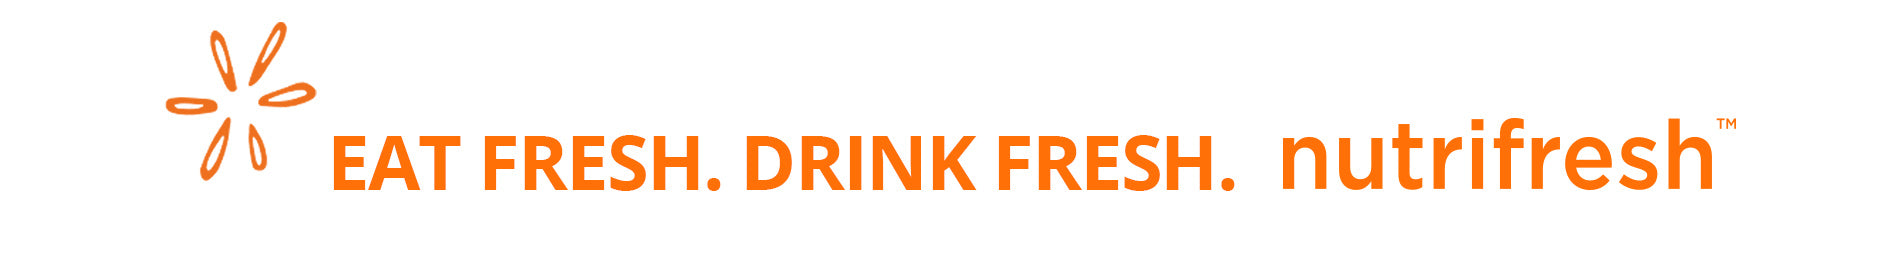 Eat Fresh. Drink Fresh. Nutrifresh